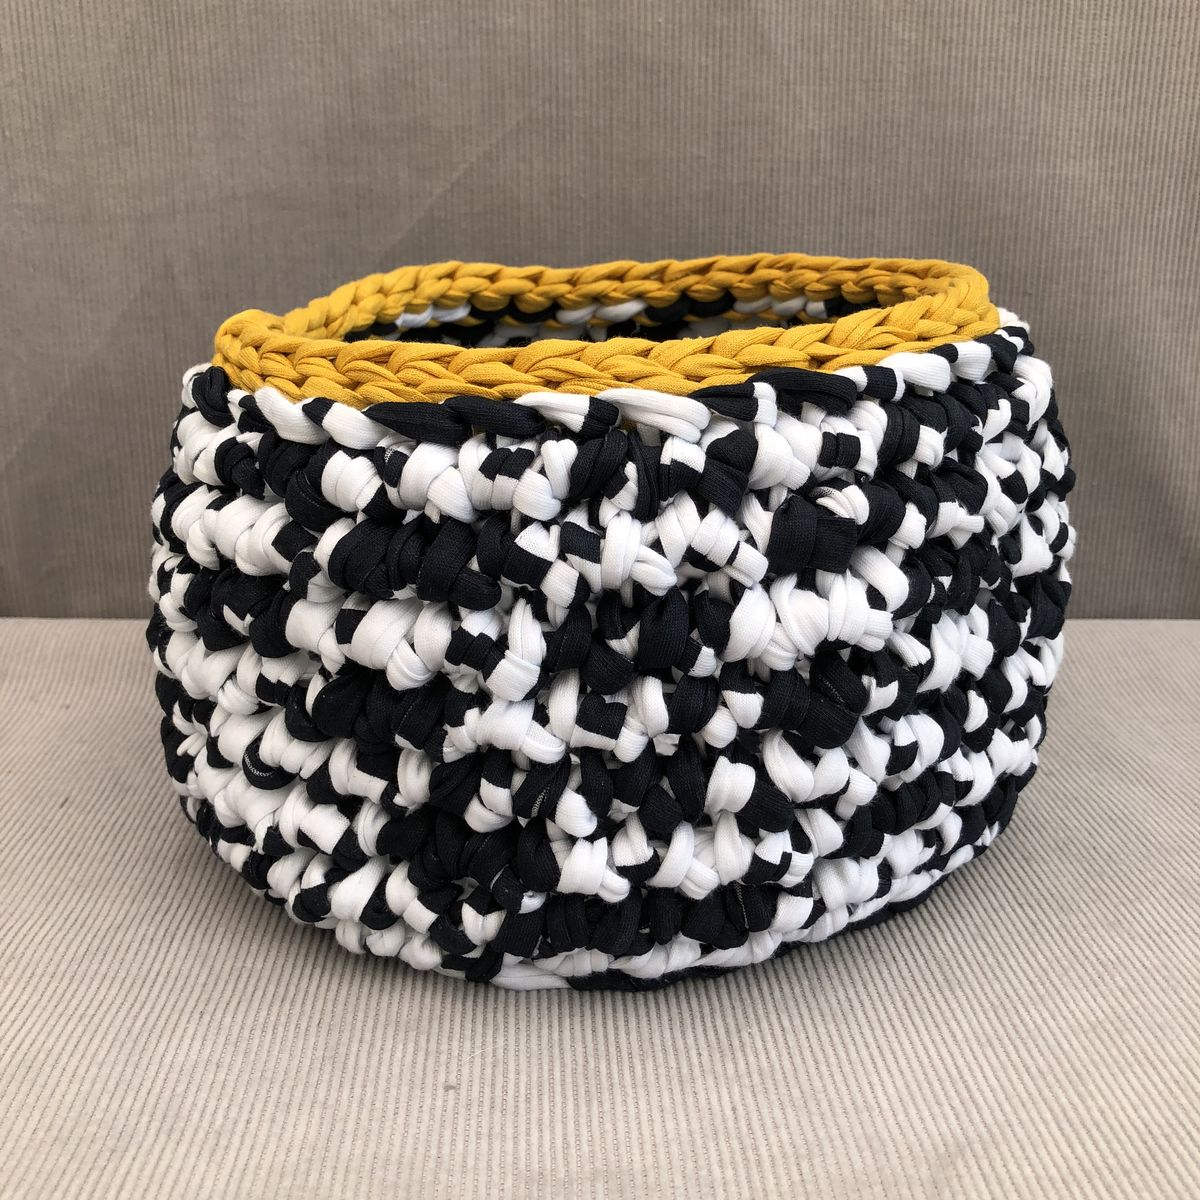 Storage container, basket, plant pot cover - product images  of